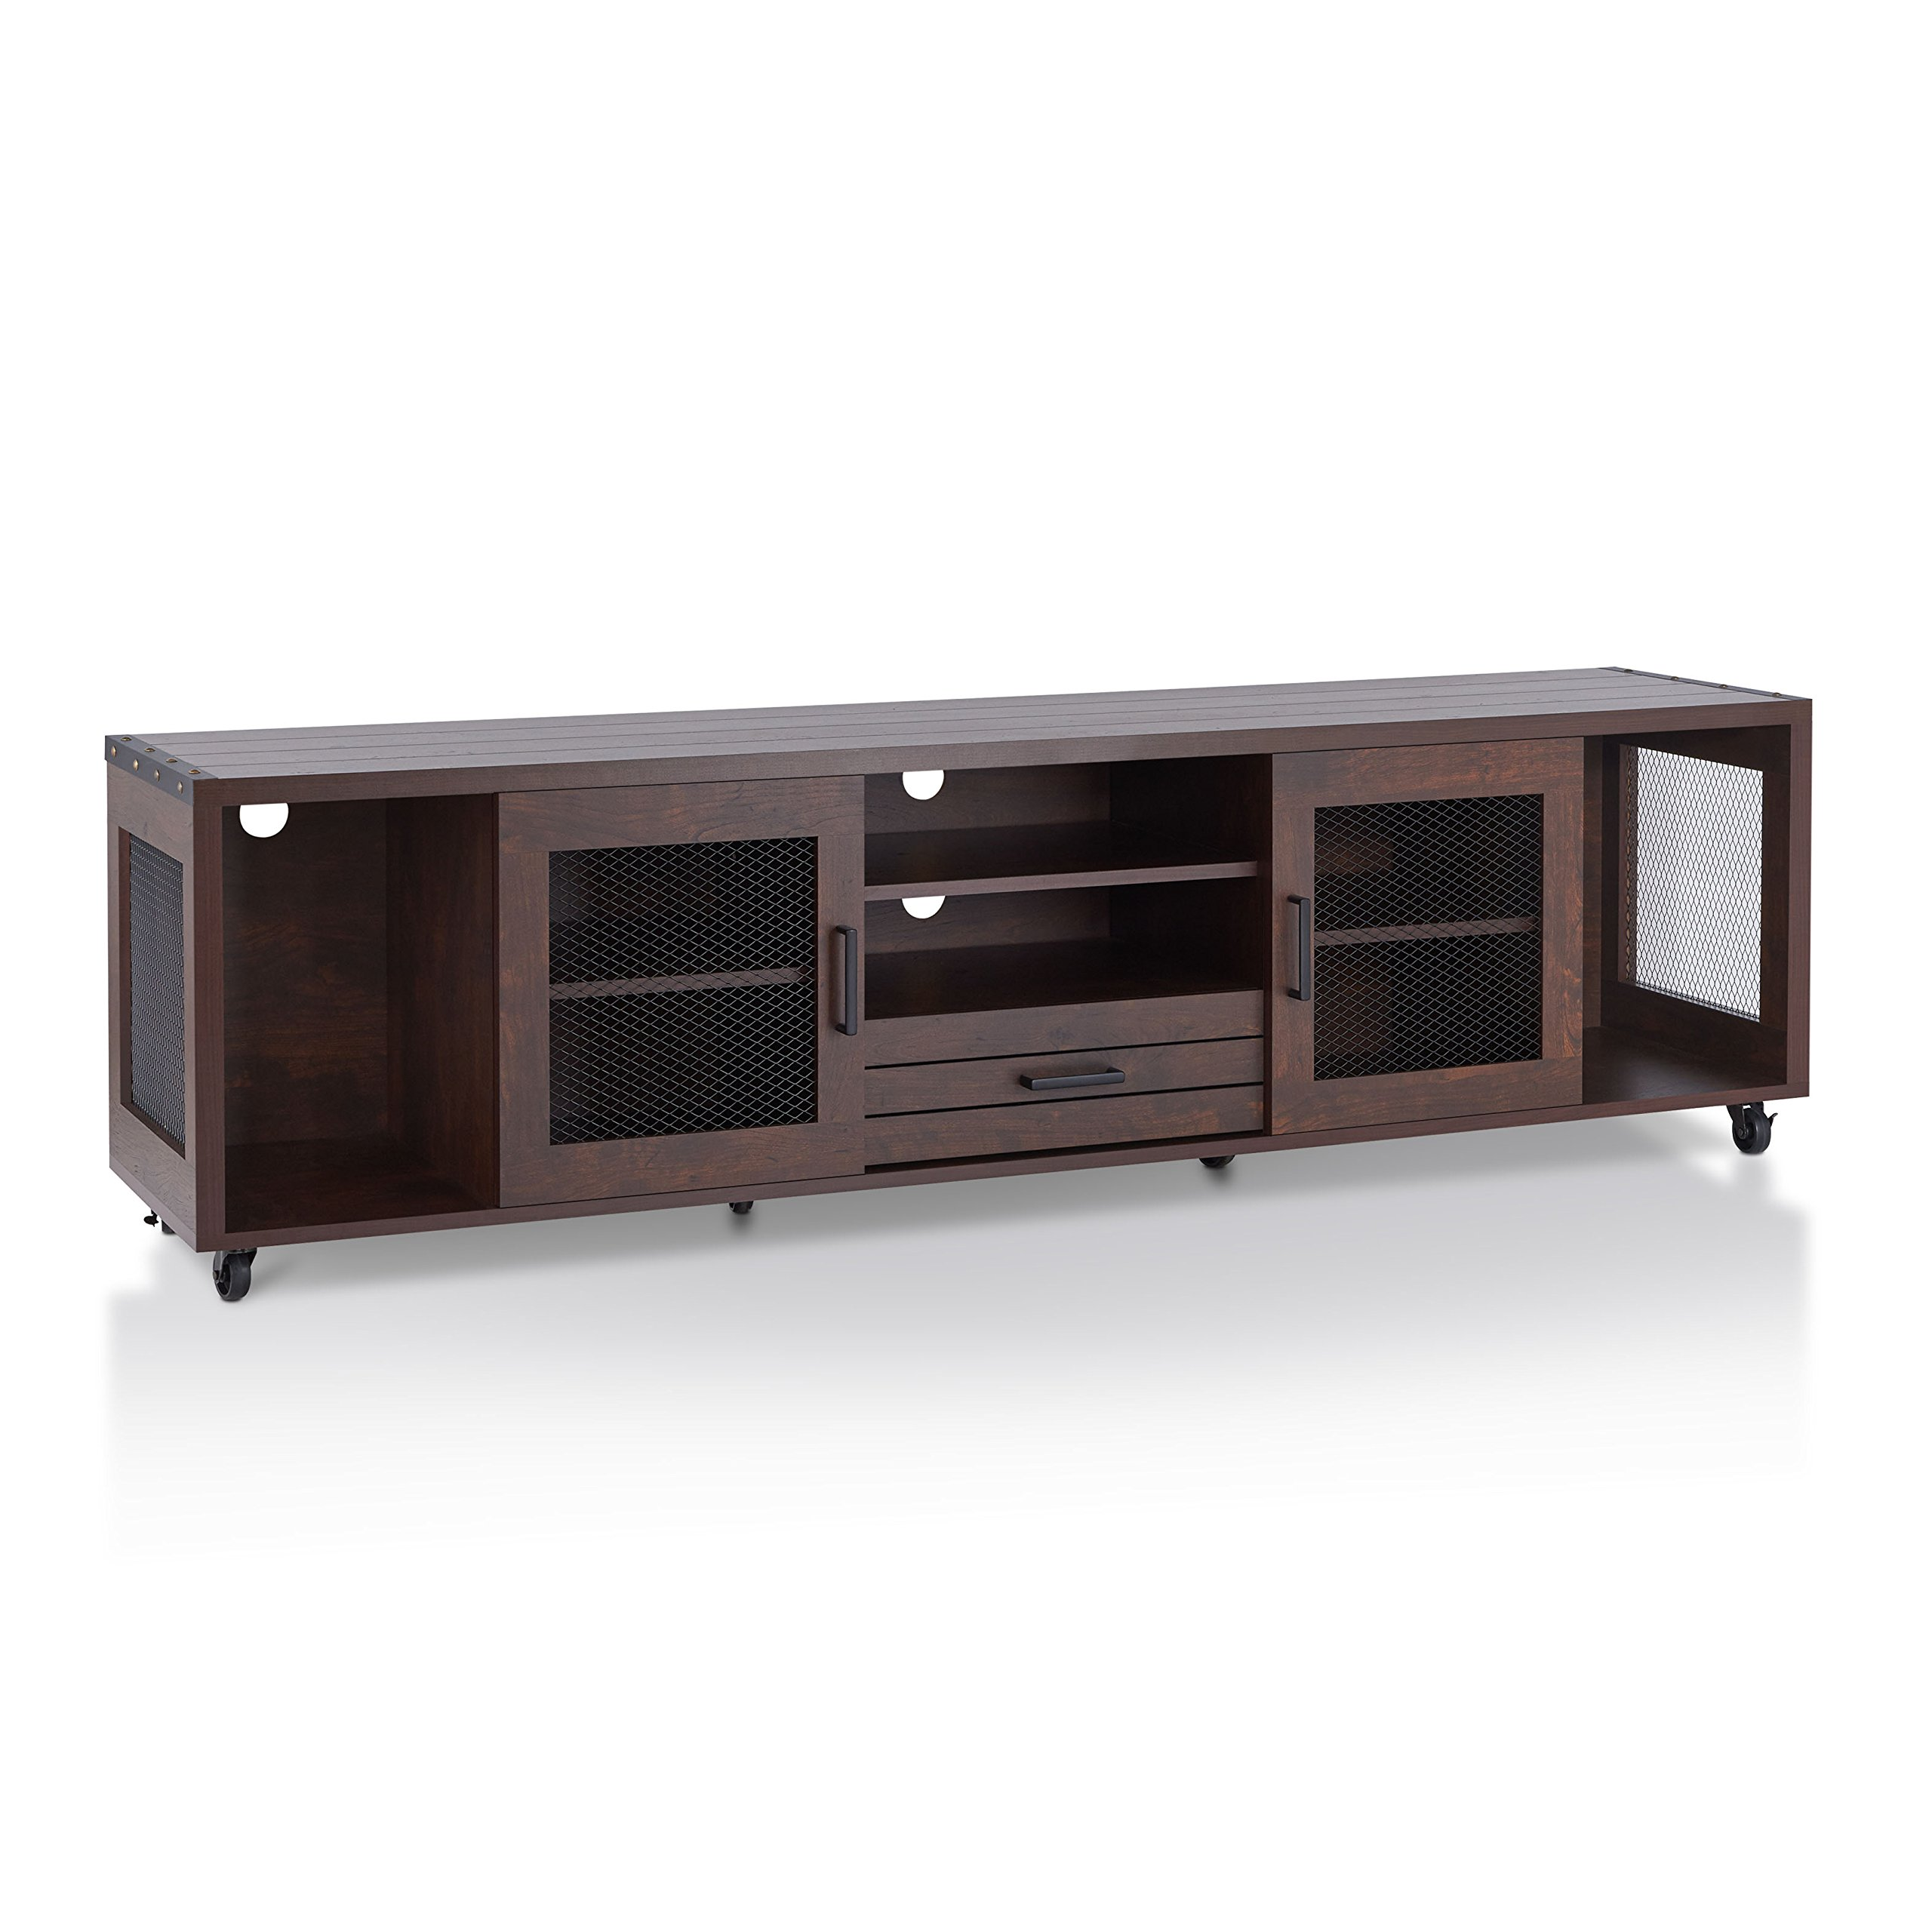 HOMES: Inside + Out Penderton Transitional Style 70'' Media Stand, Vintage Walnut